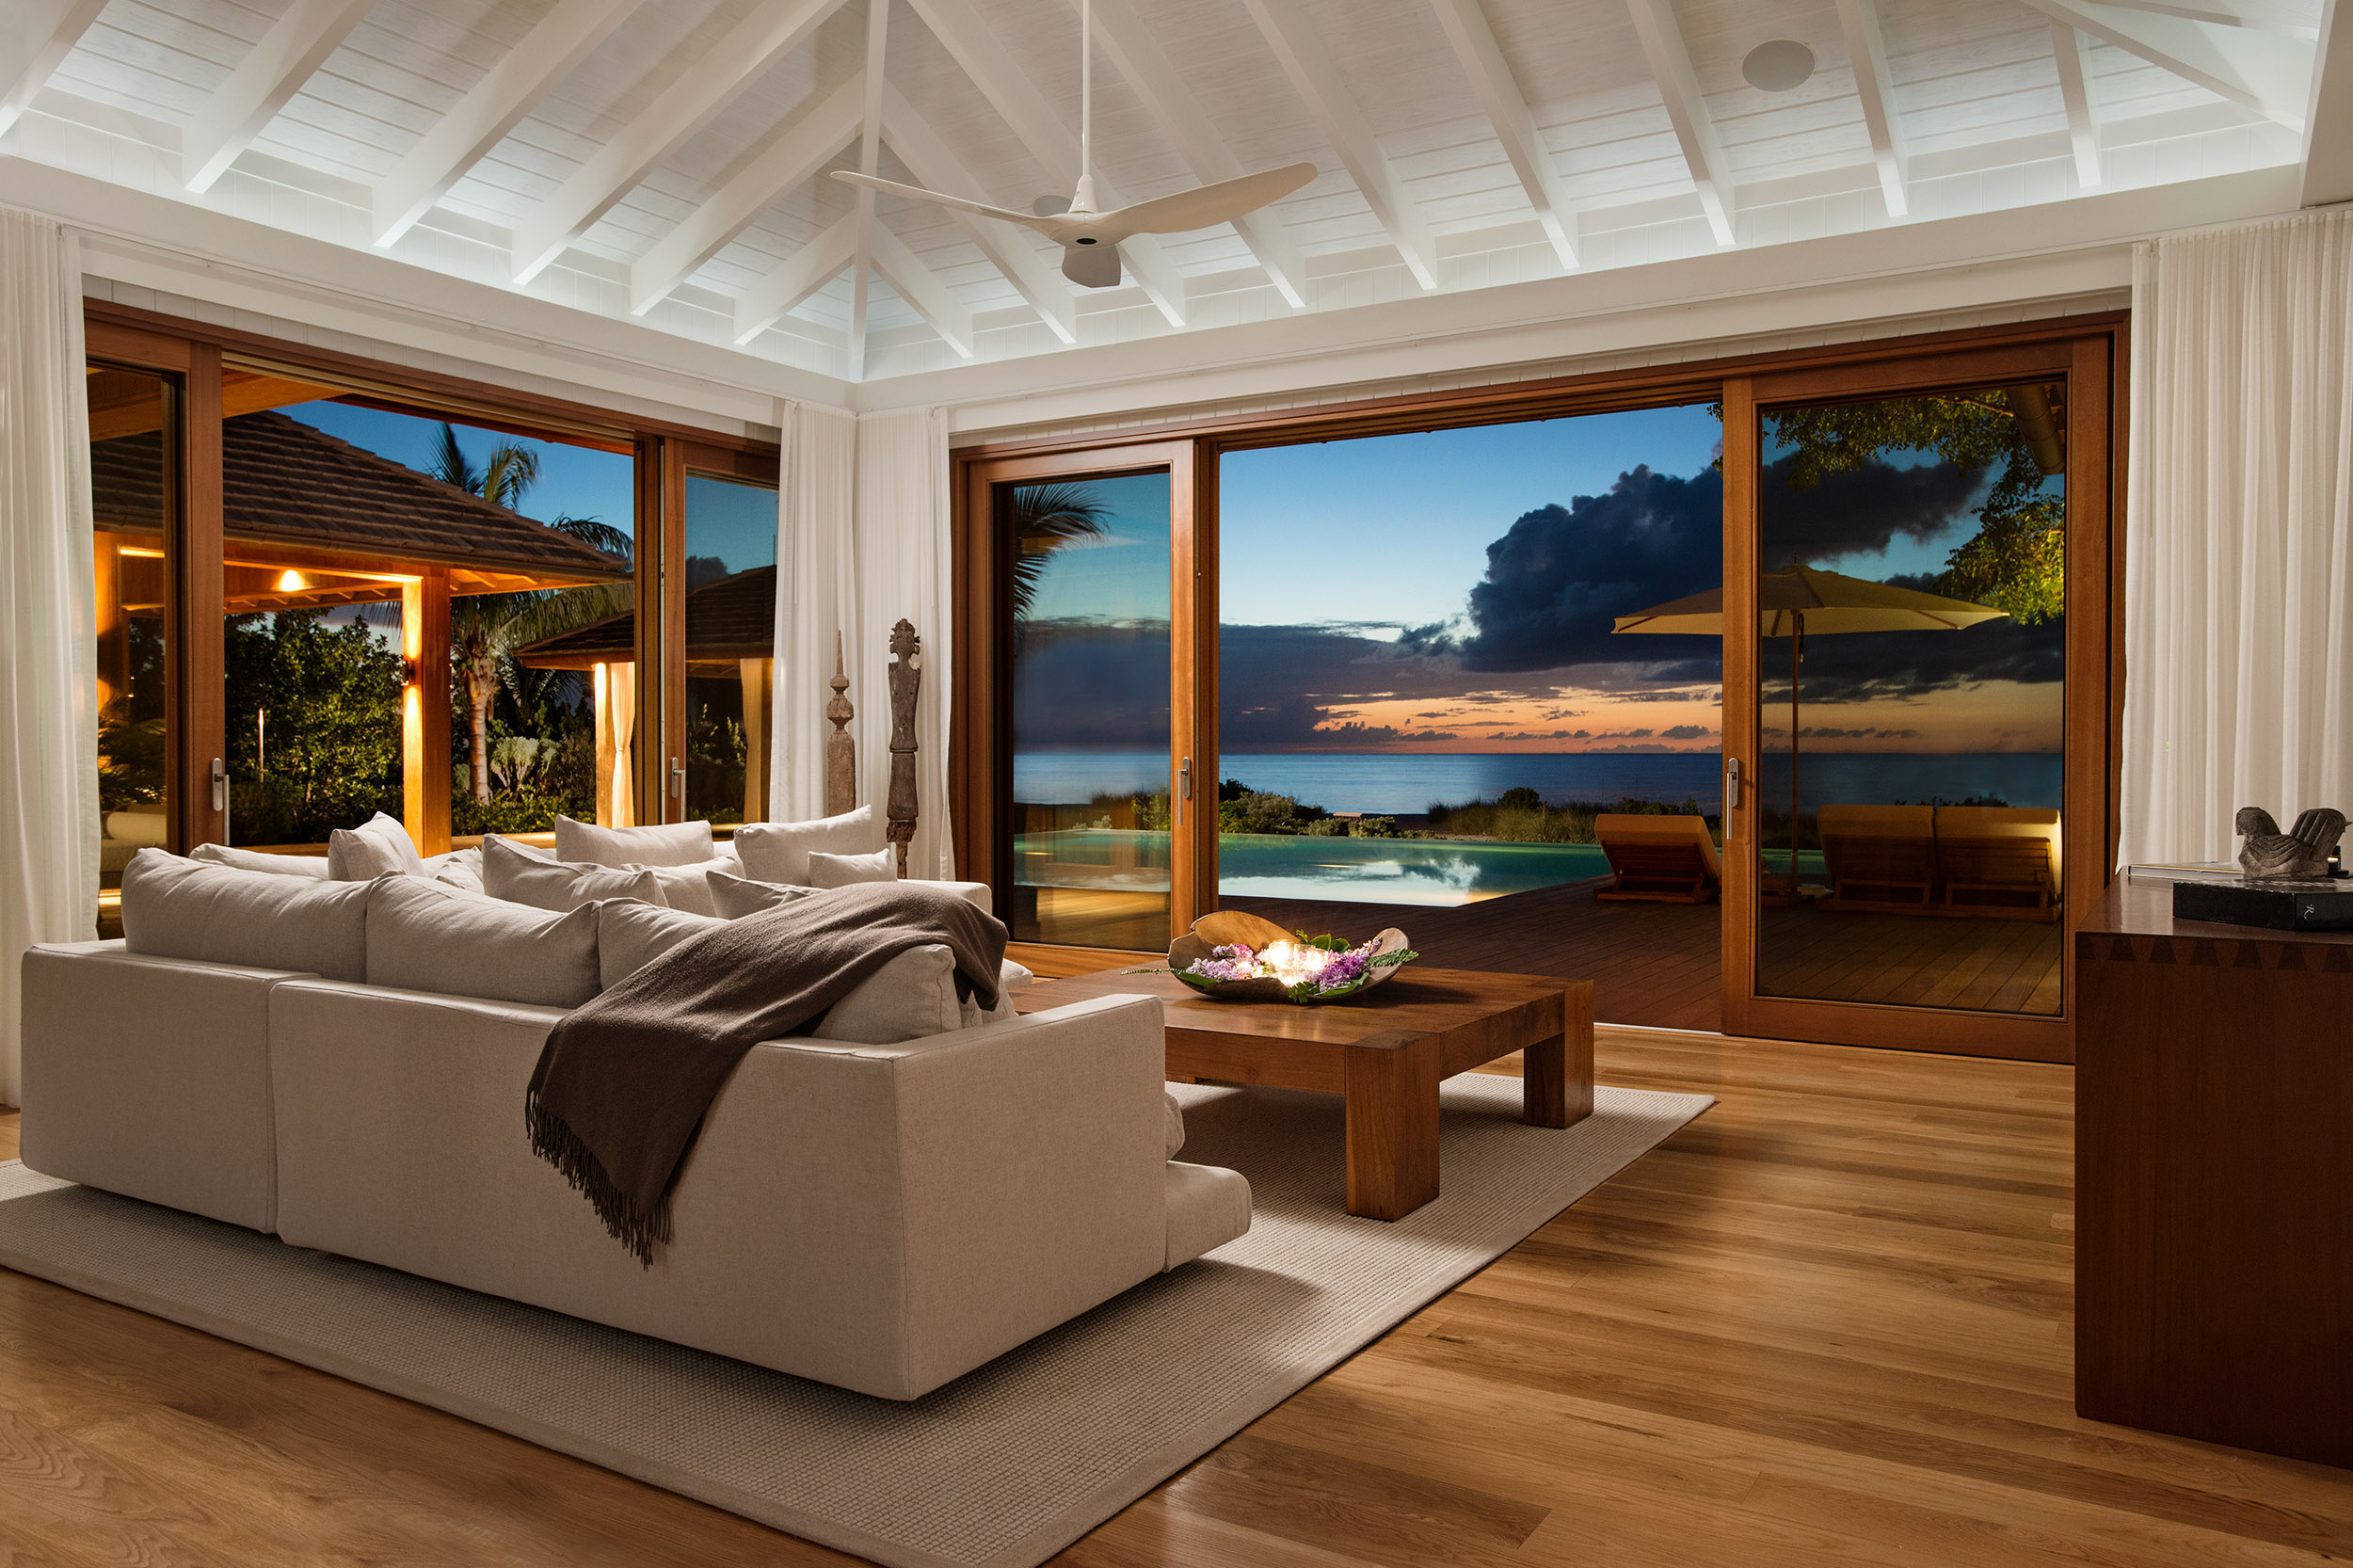 Serenity - evening view of the living area